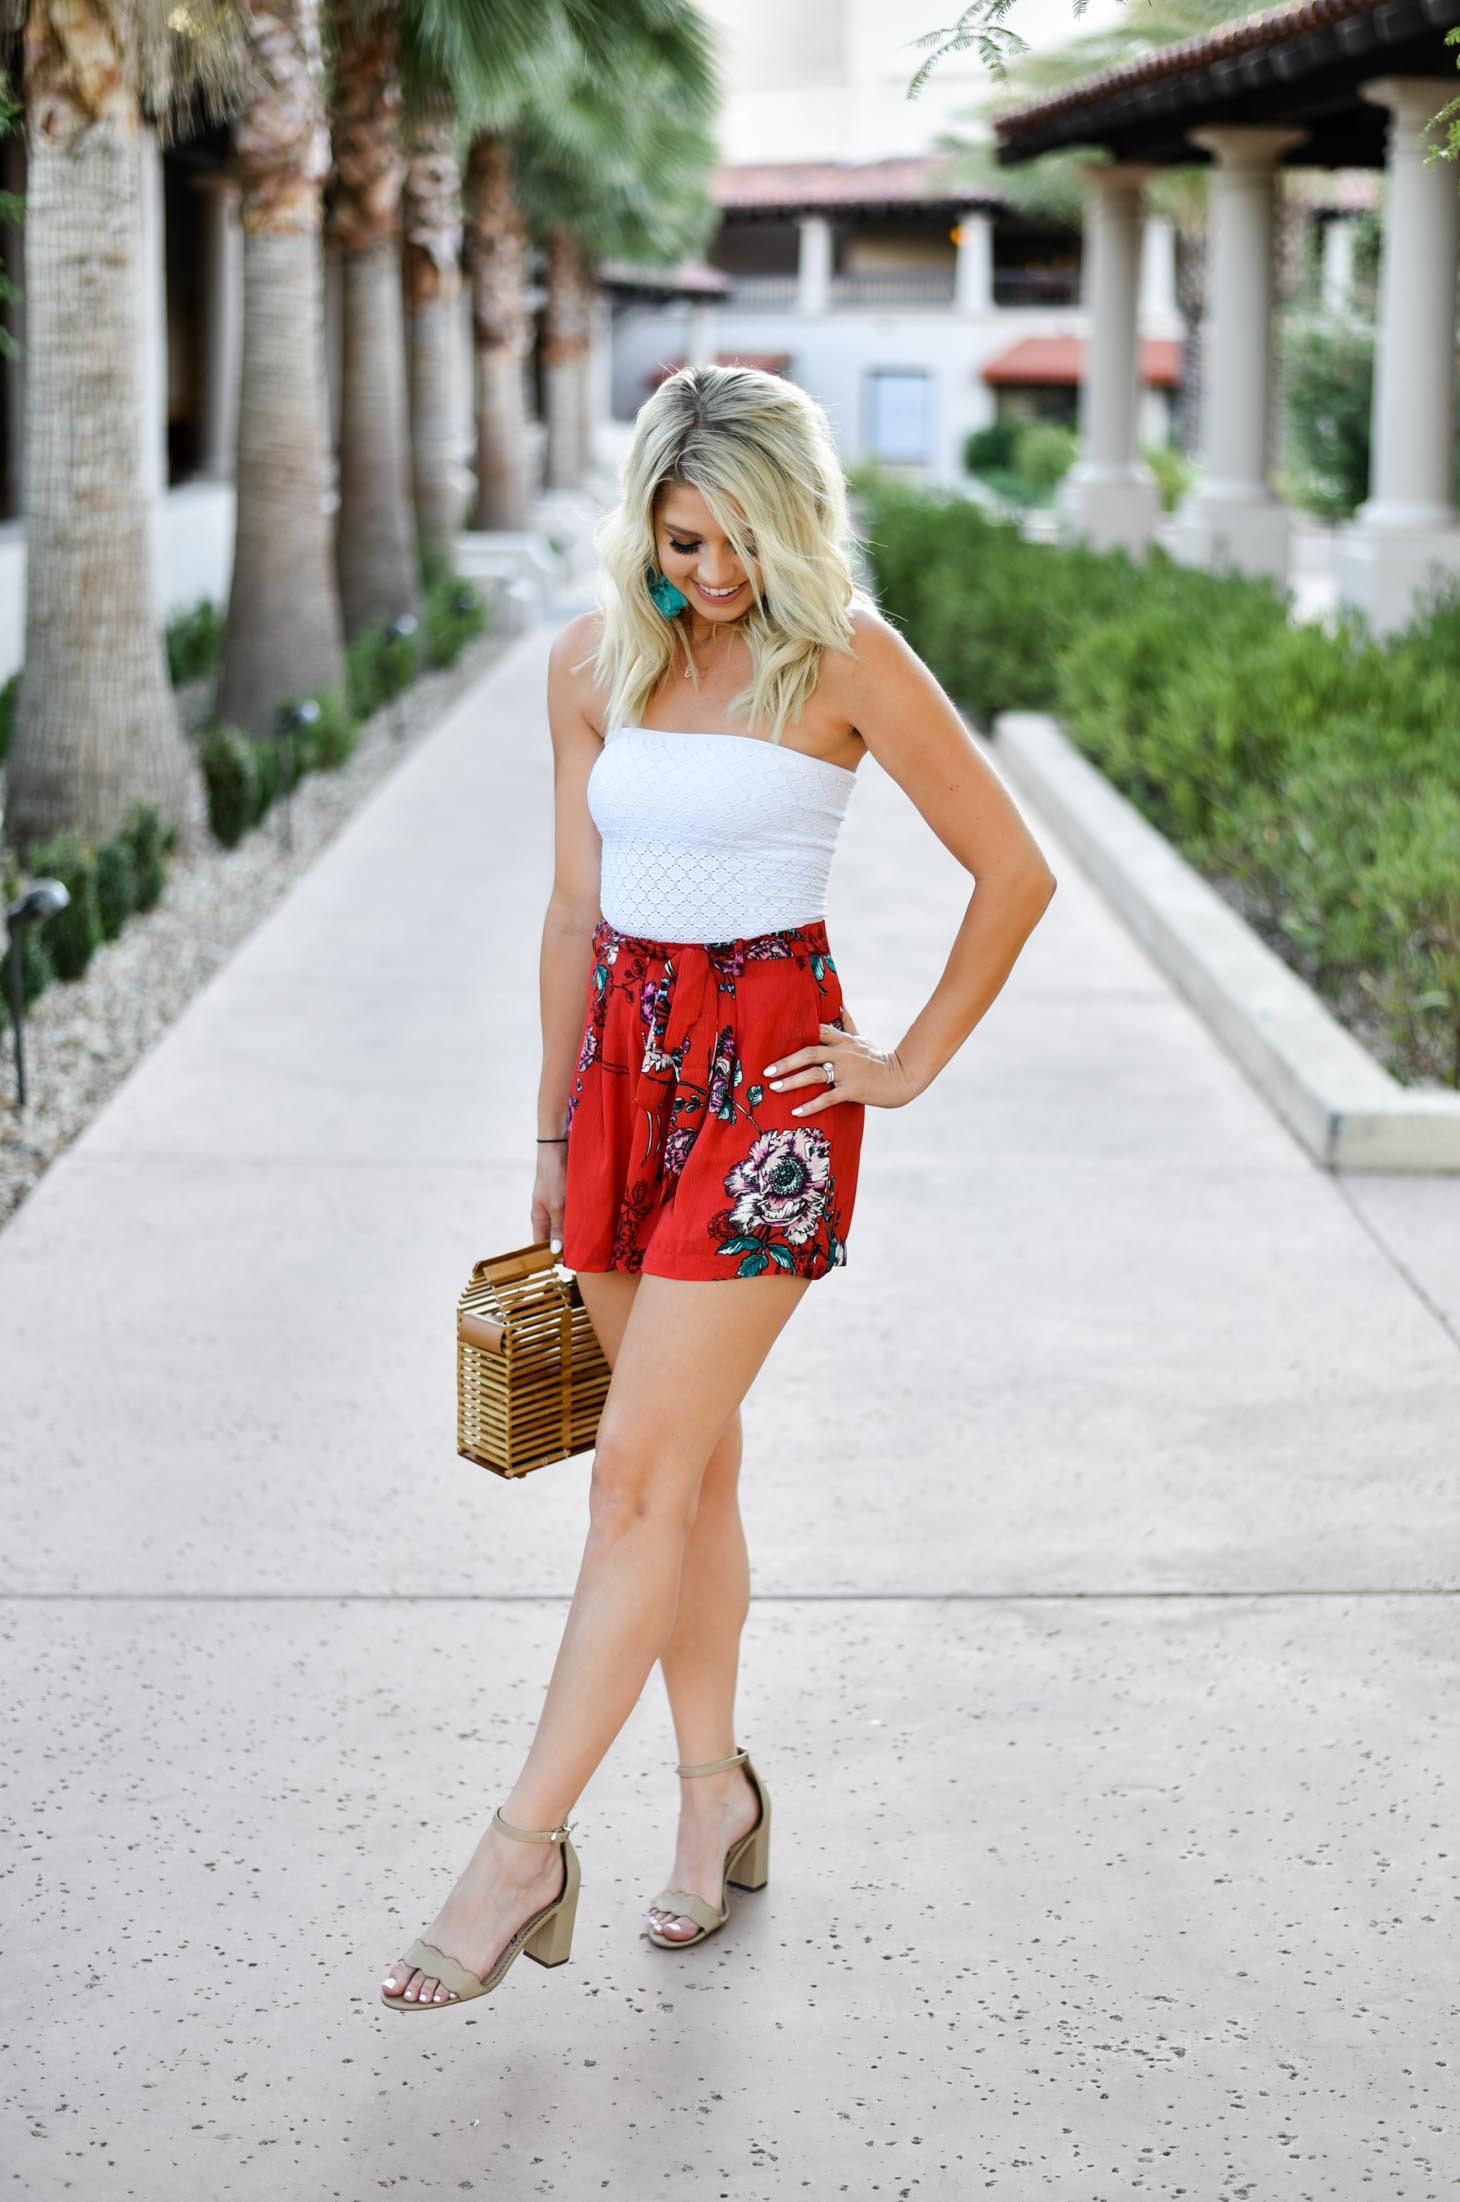 Erin Elizabeth of Wink and a Twirl shares this Shop the Mint floral shorts Summer style outfit